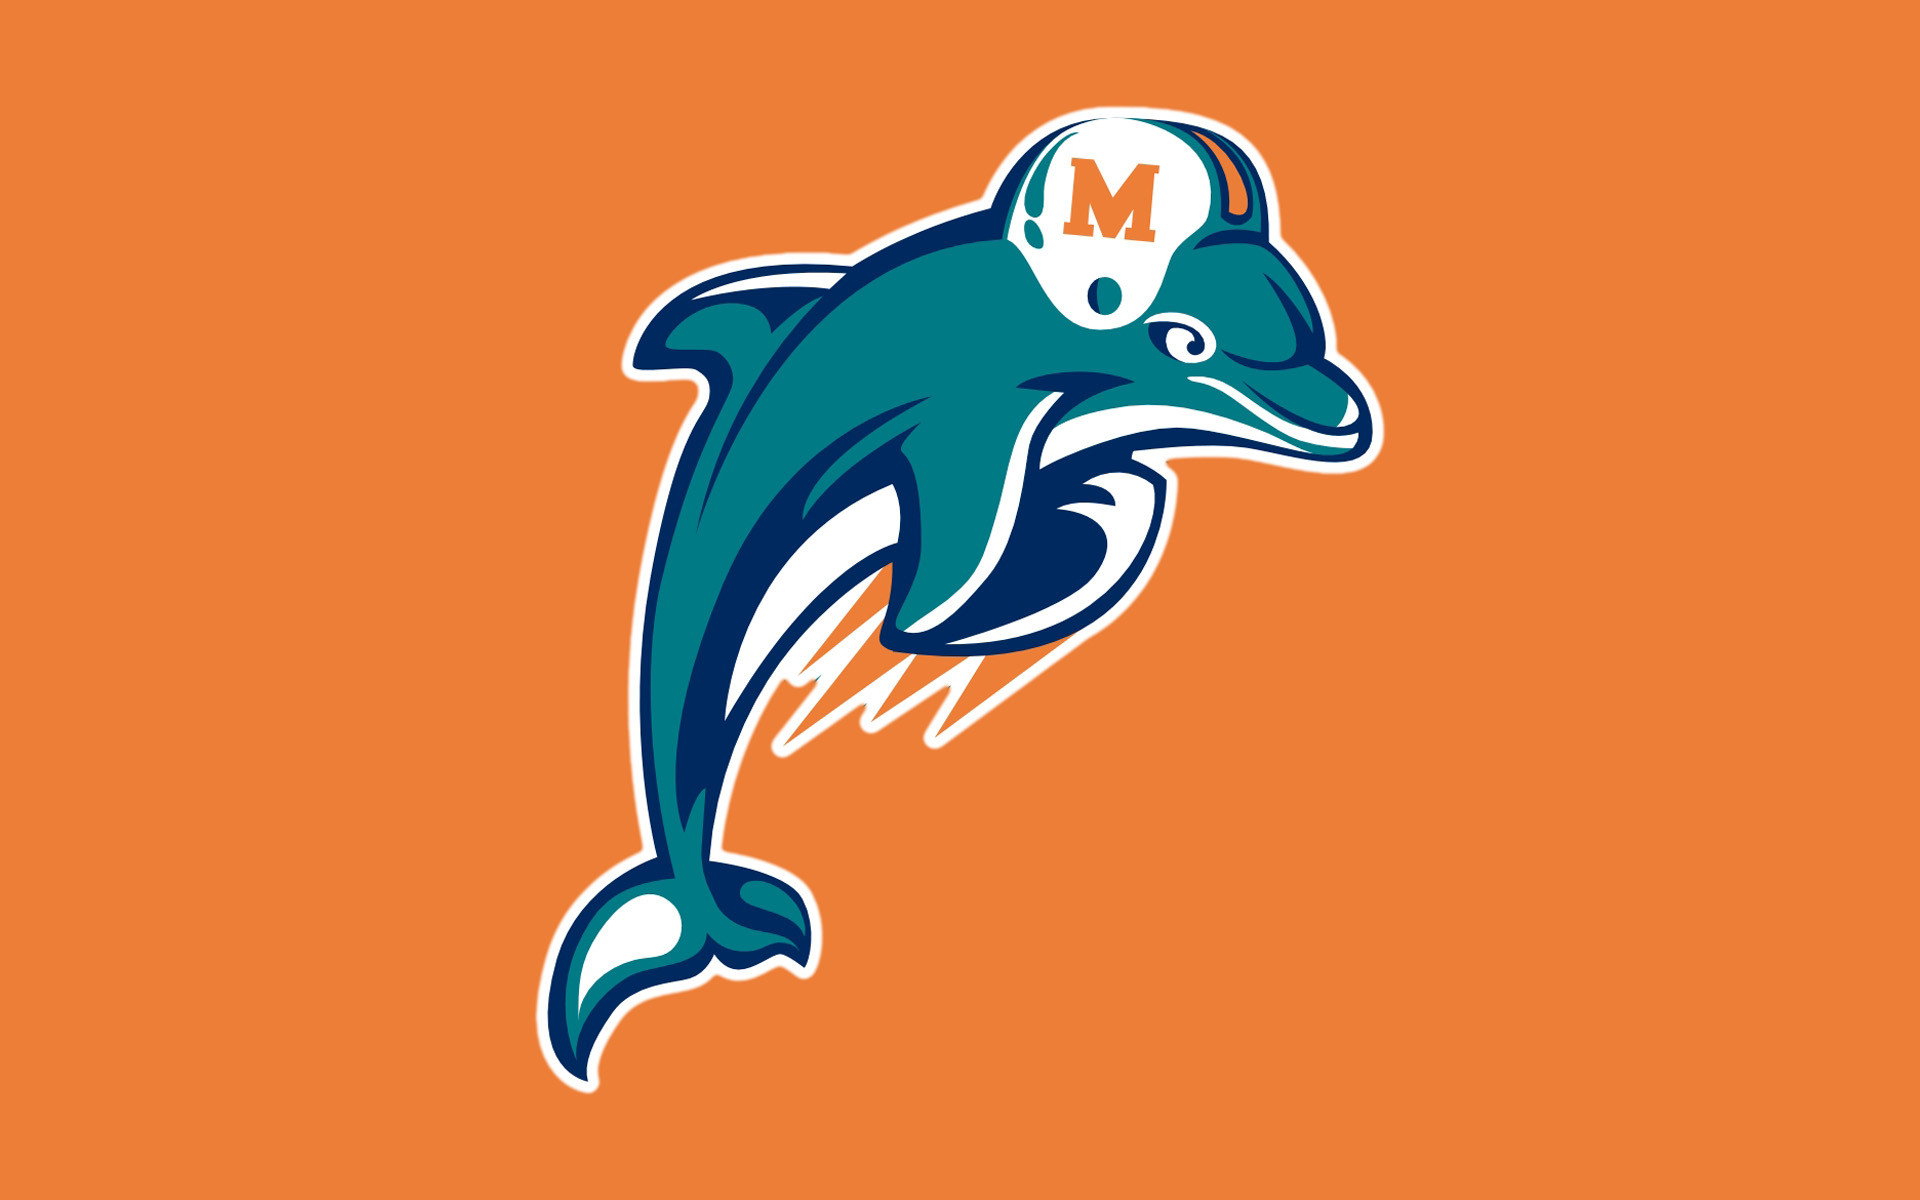 The Miami Dolphins are a professional American football team based in the  Miami metropolitan area.